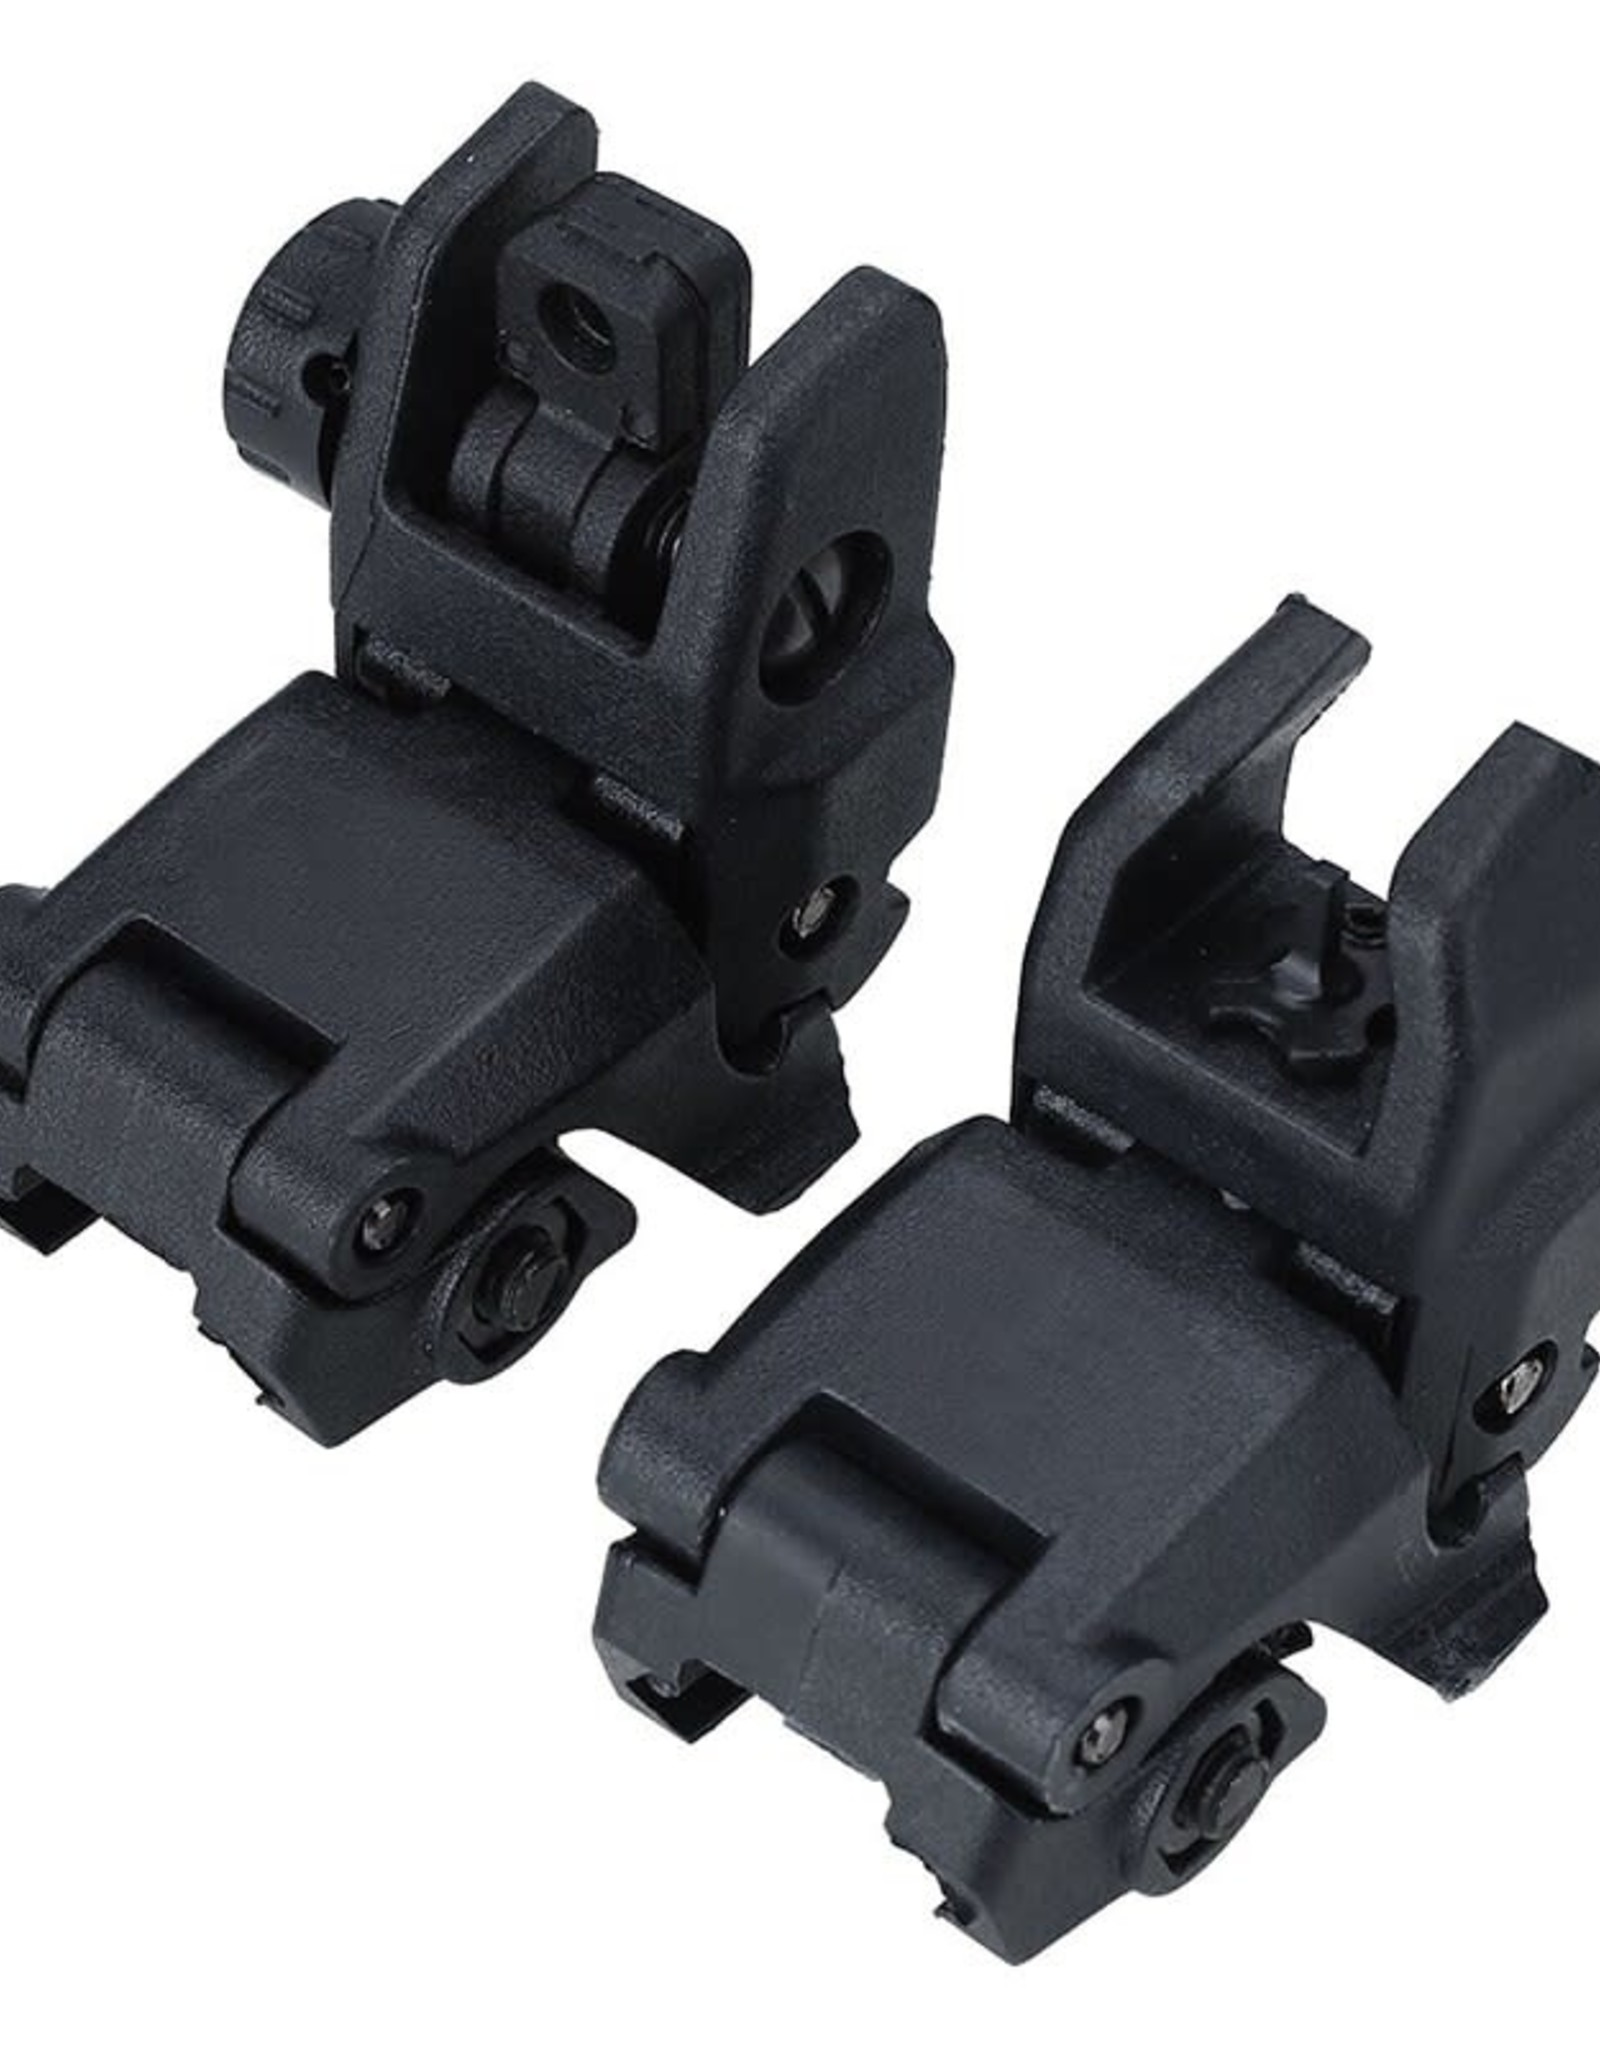 Canuck 1913 Folding Sight Set